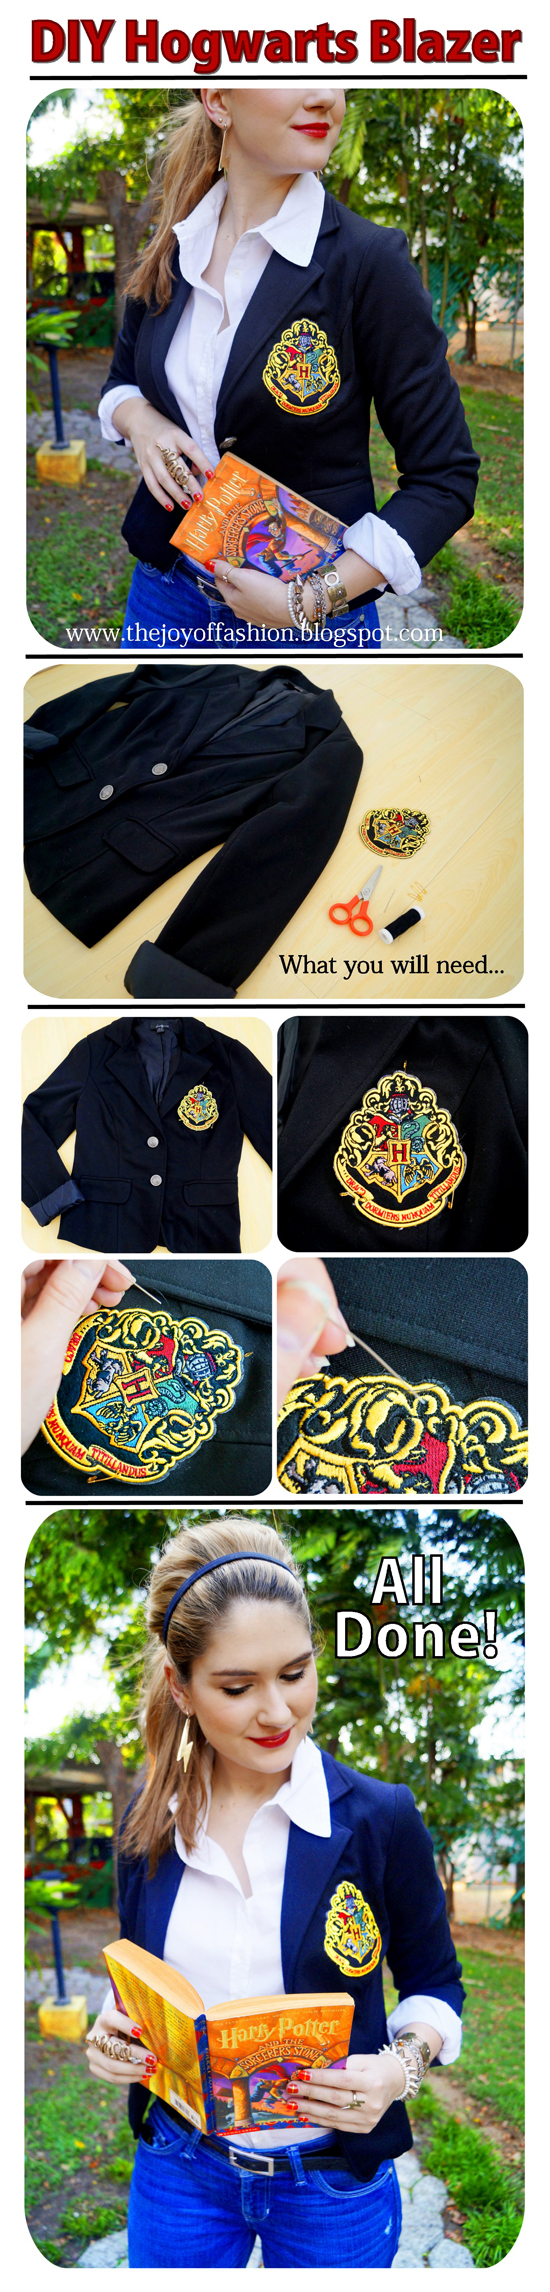 DIY Harry Potter Hogwarts Blazer